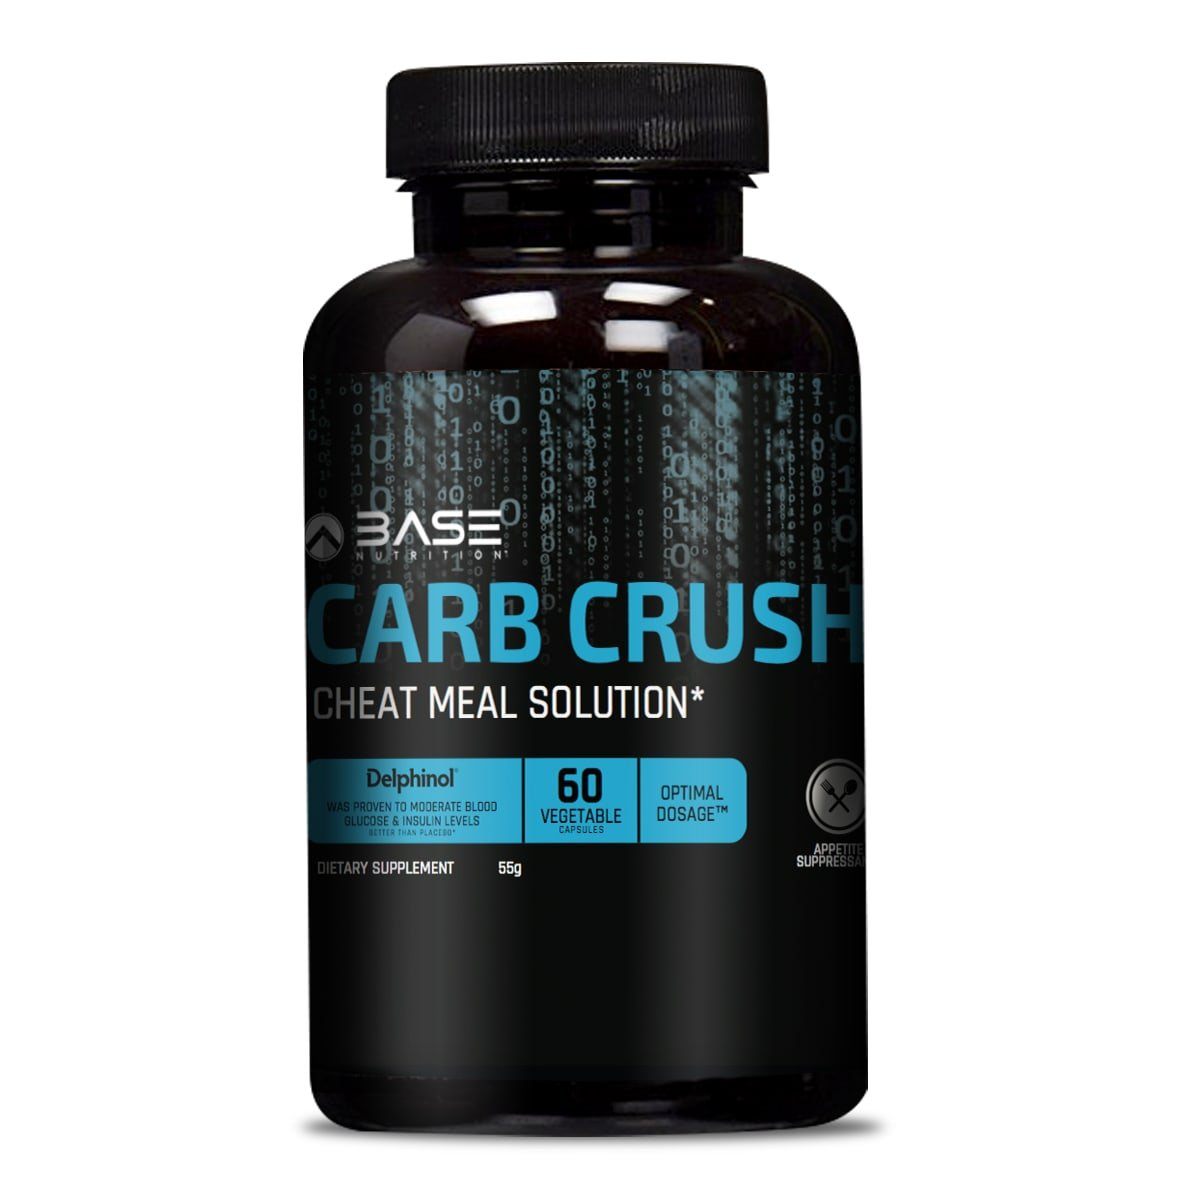 BASE CARB CRUSH - Carb Blocker & Appetite Suppressant Pills - Smart Weight Loss Pills that Allow you to Cheat on Your Diet - Among the Best Weight Loss Products - 60 Natural Vegetable Capsules by BASE Nutrition LLC